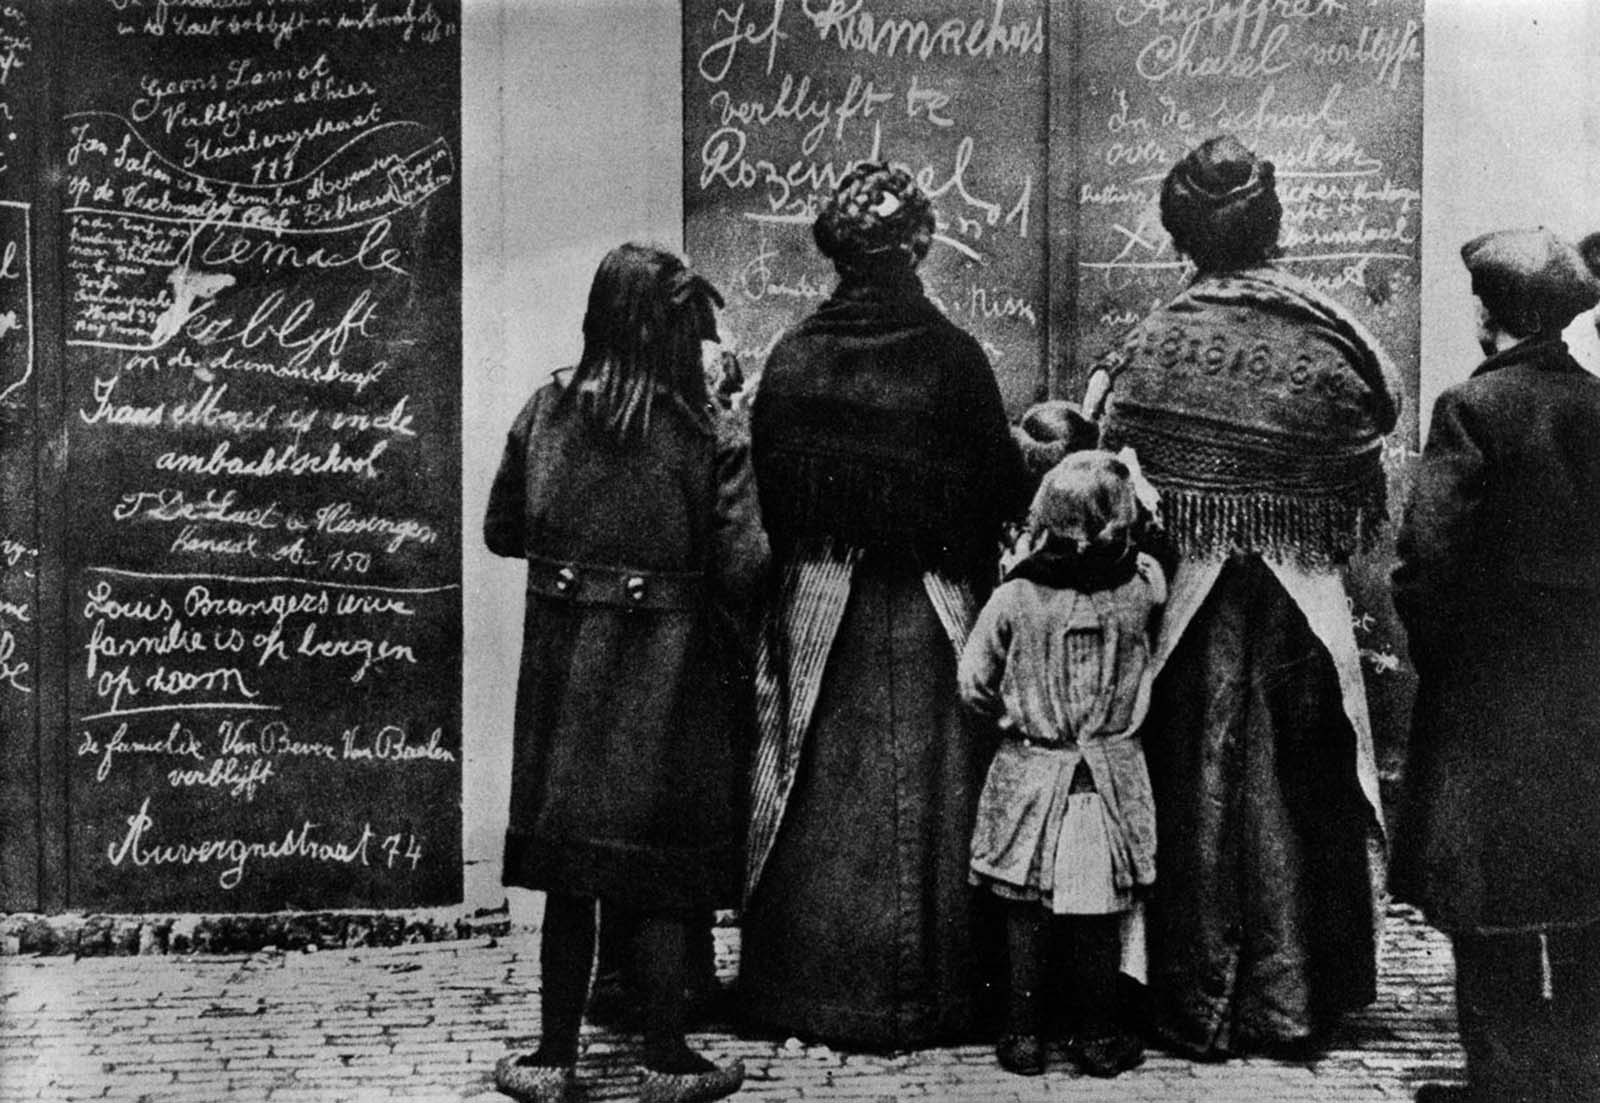 Belgian refugees read Flemish messages left by other refugees in a French town. 1915.